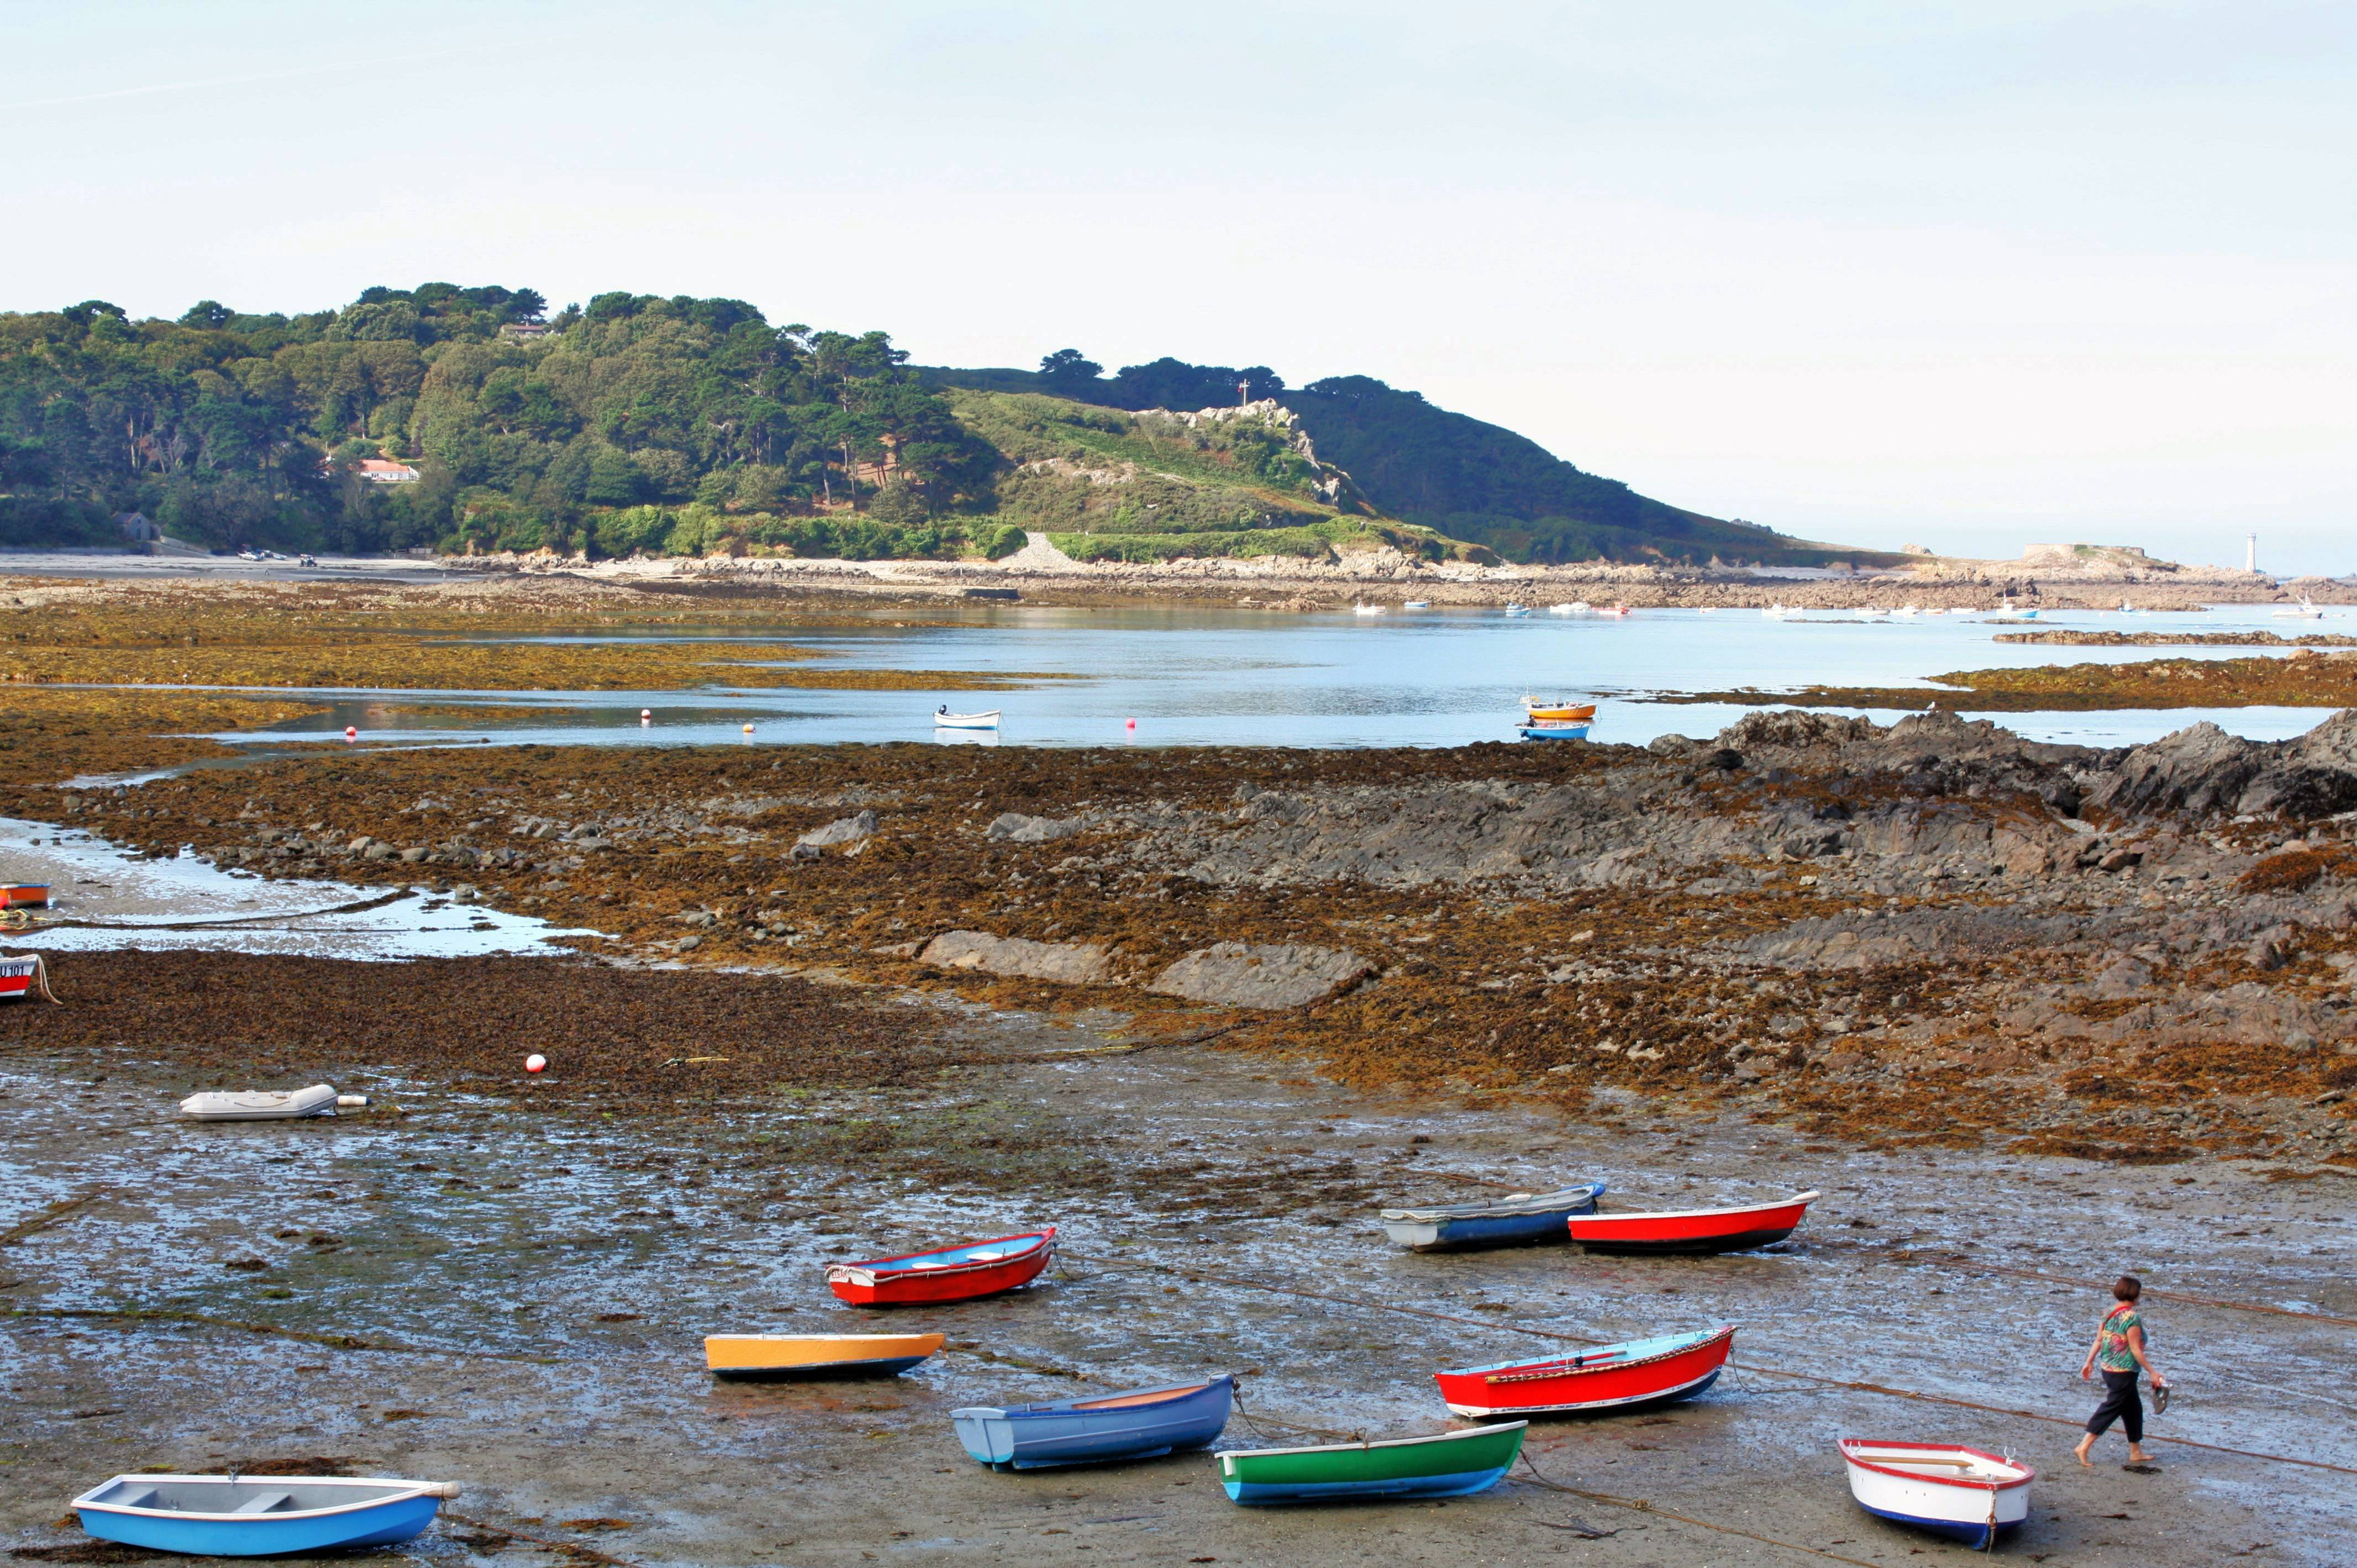 Brightly colored rowboats sit beached in Guernsey, one of the Channel Islands in the waters between England and France. The scene is one of many that can be enjoyed on a bike tour of the area offered while in port on a cruise.